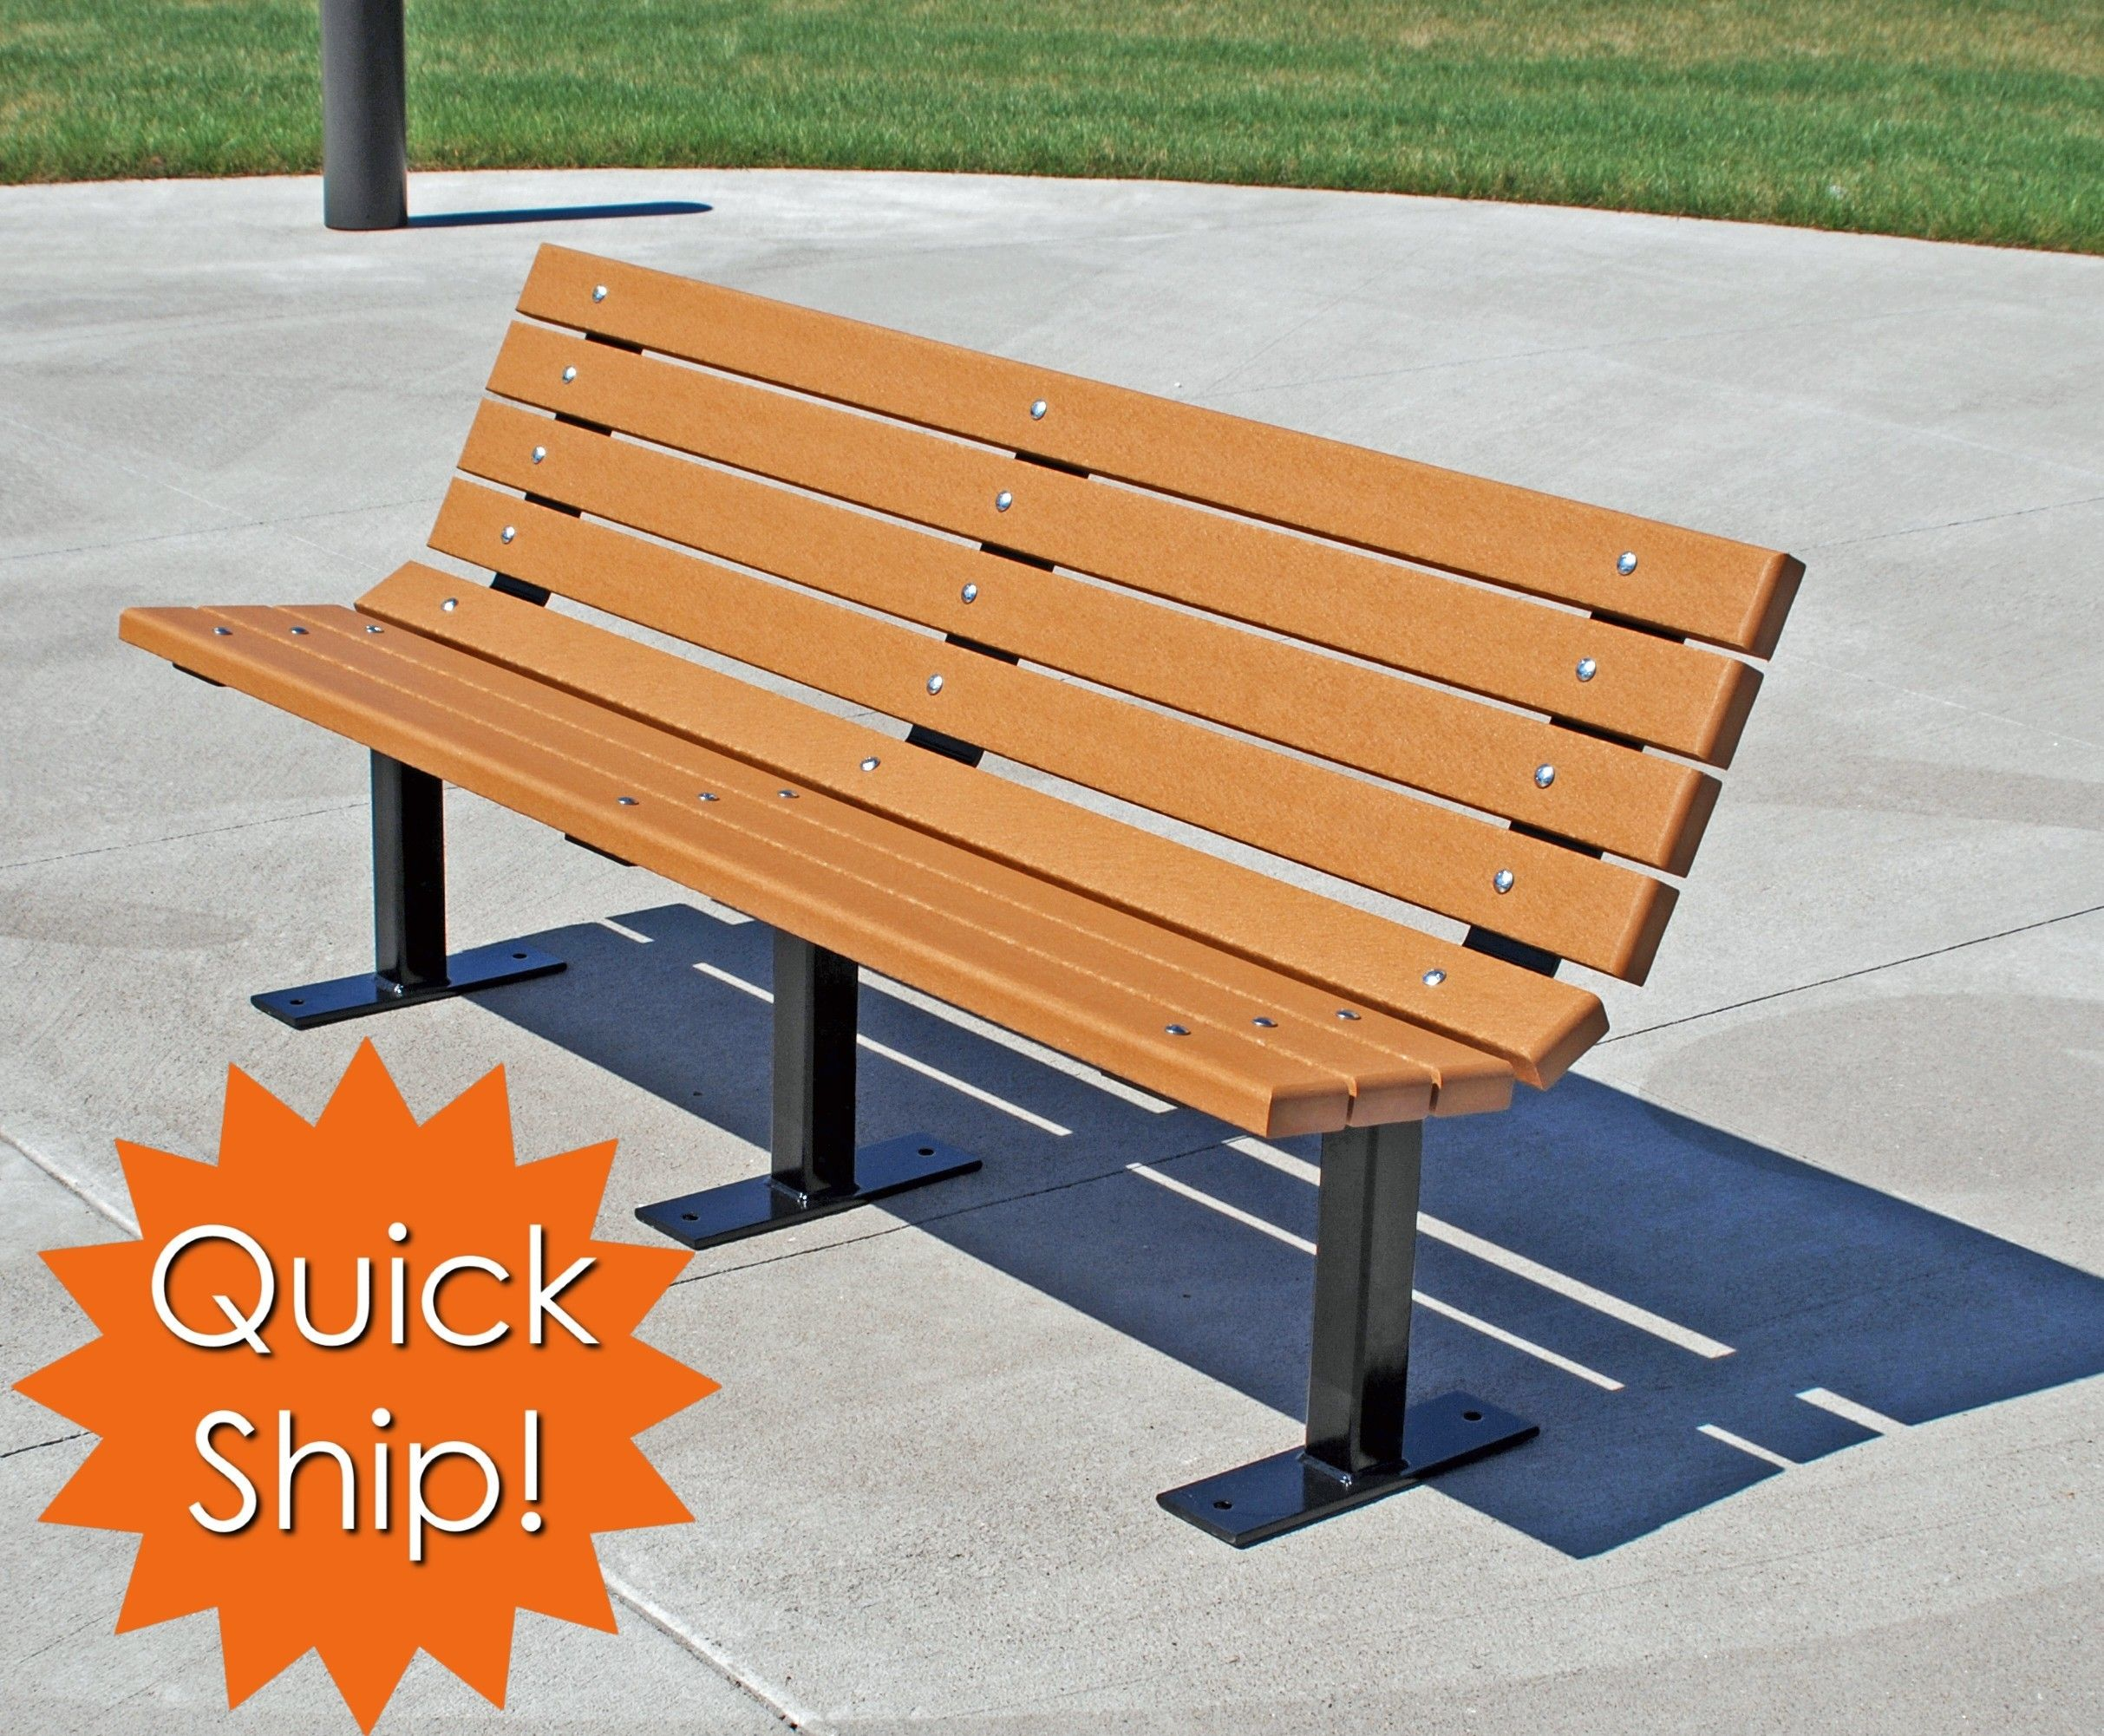 Akzo Nobel Powder Coated Steel Outdoor Table With Bench Metal Picnic Table Legs View Metal Picnic Table Legs Metal Picnic Tables Picnic Table Outdoor Tables